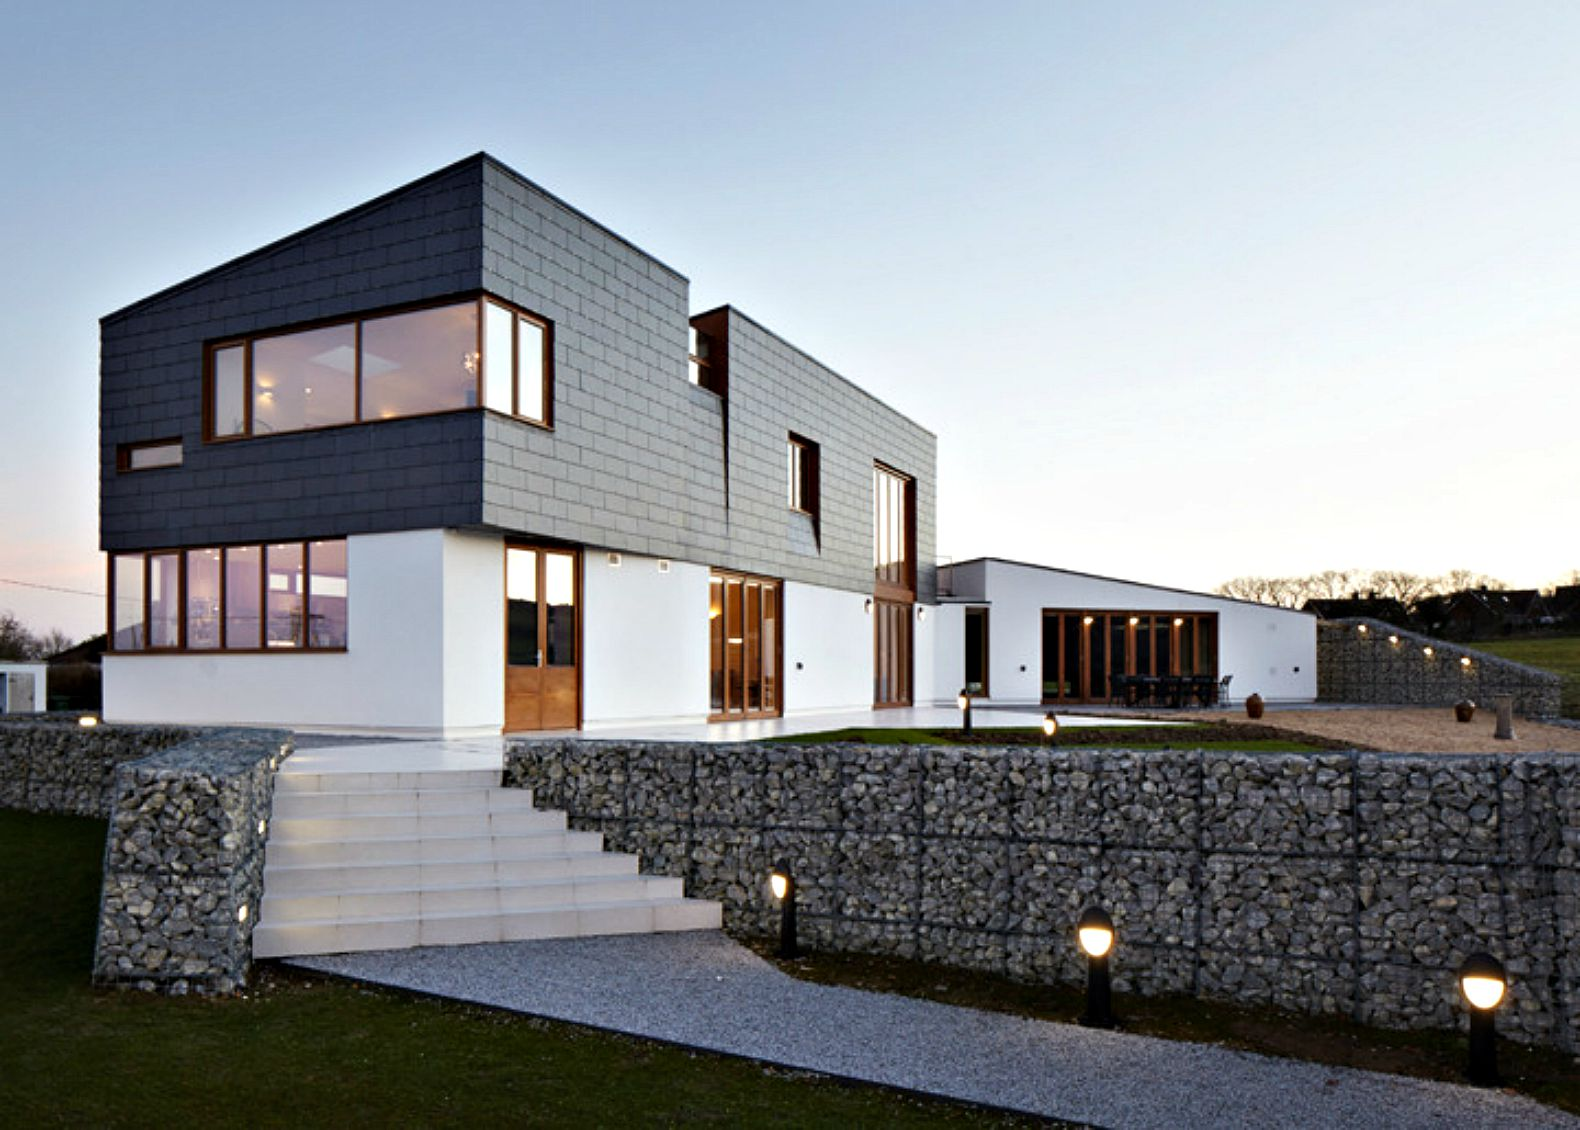 Alma-nac's sustainable Split House adapts to the aging owners' future care needs